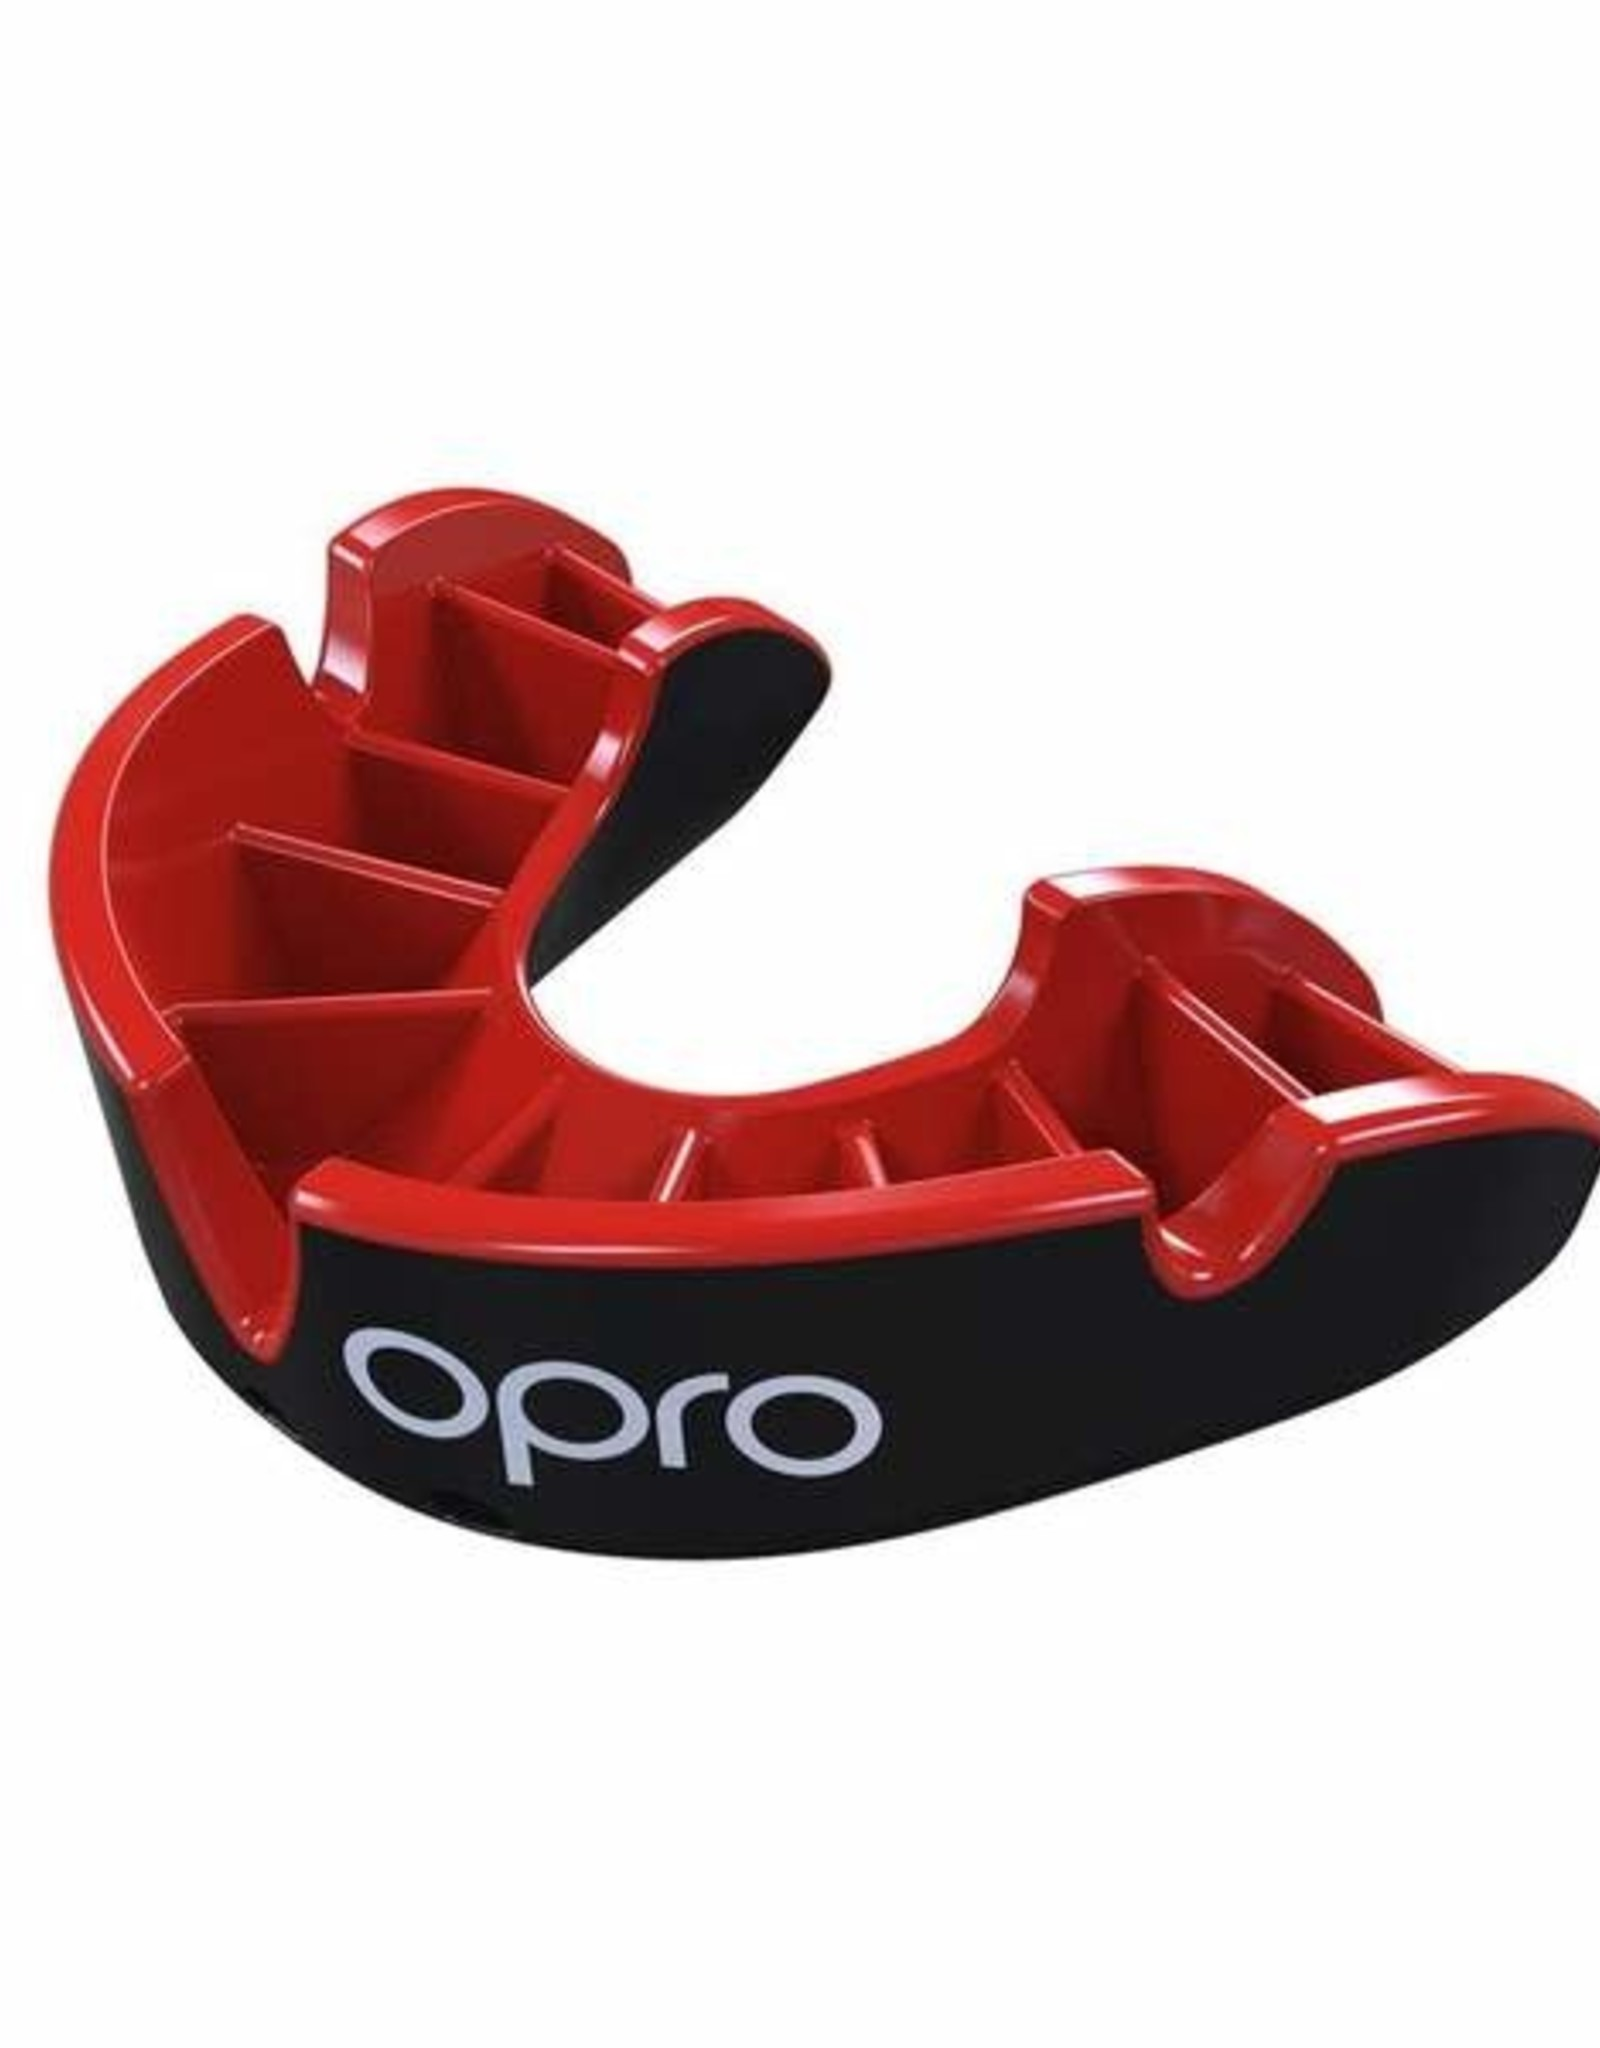 OPRO SELF FIT SILVER JR. BLK/RED